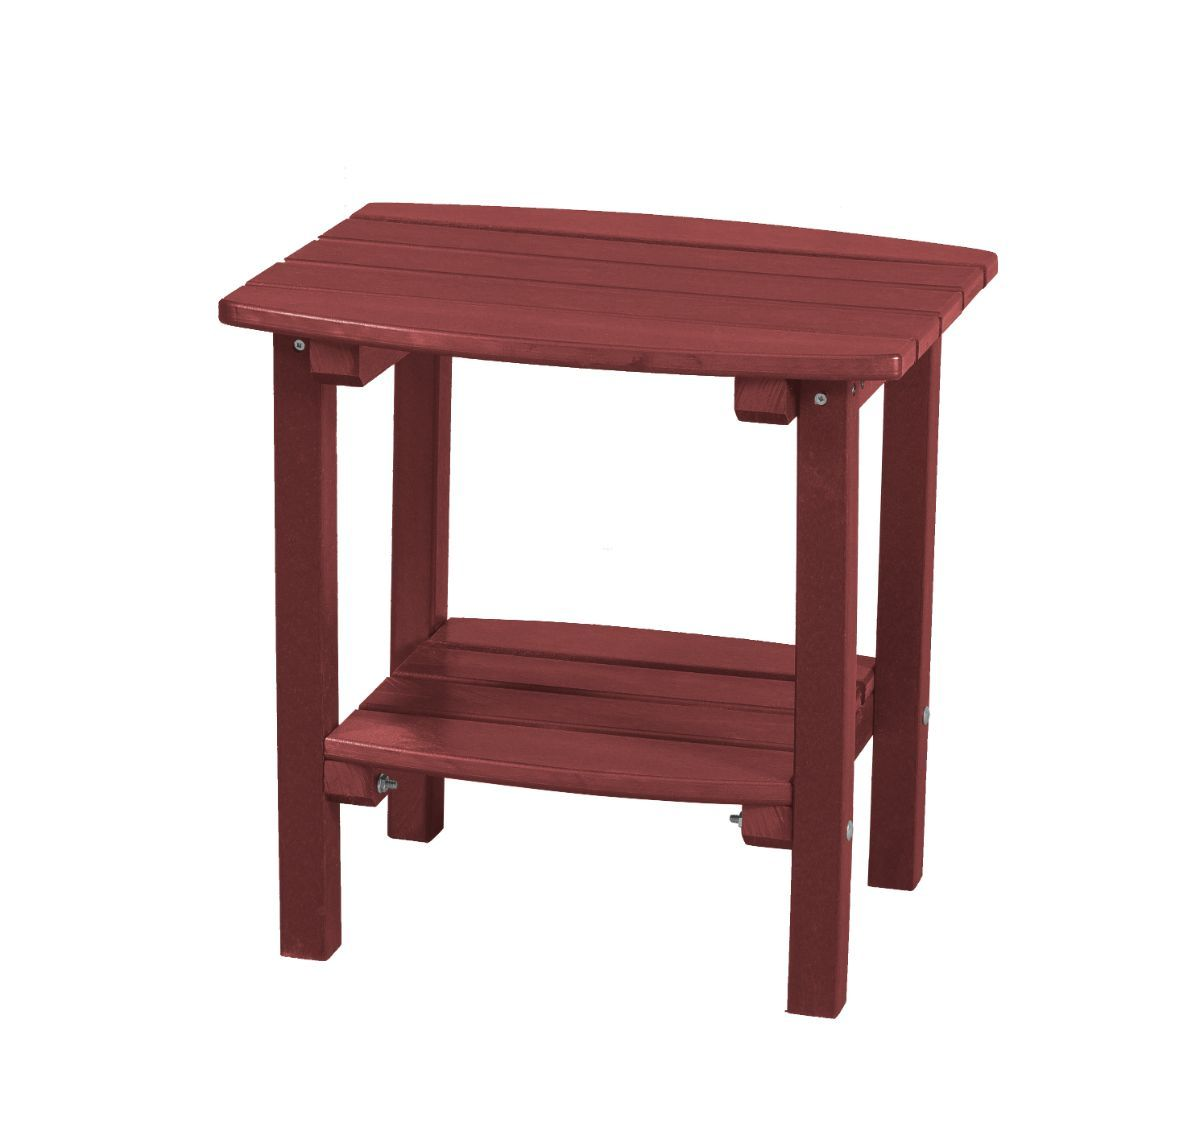 Cherry Wood Odessa Small Outdoor Side Table